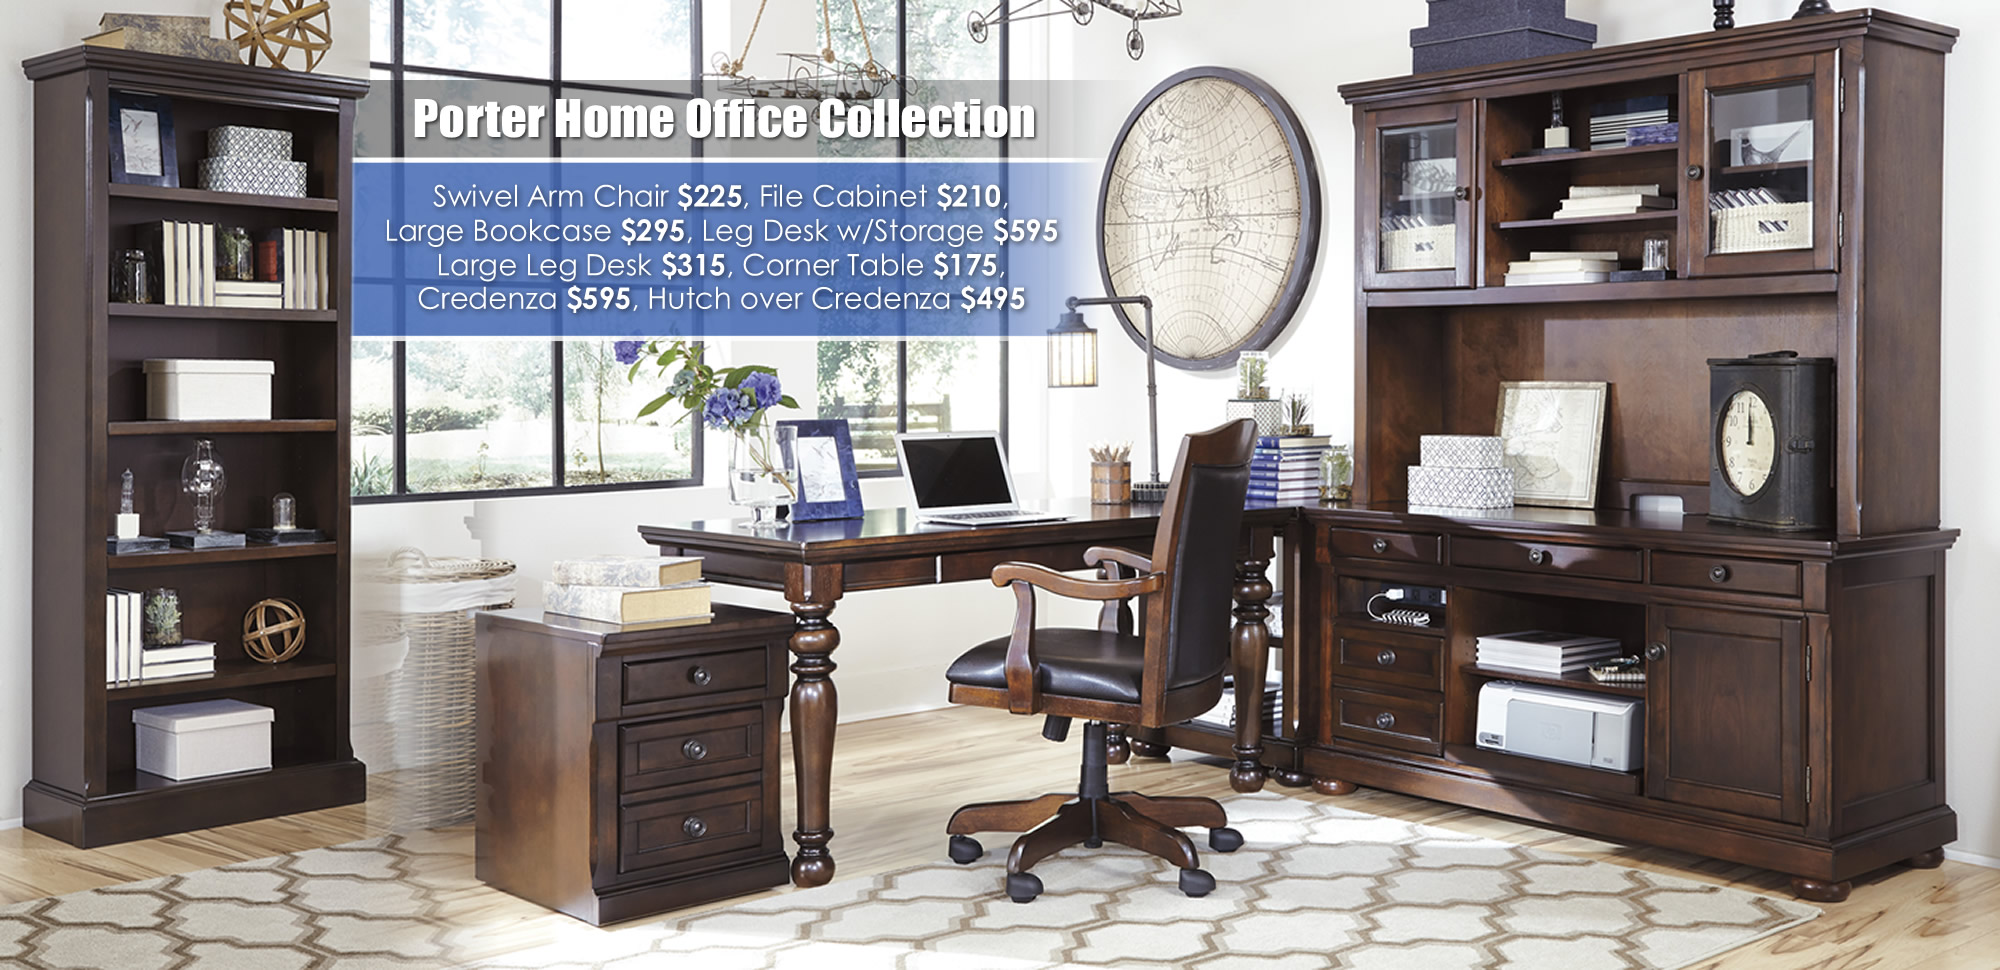 porter home office collection h697 44 49 47 46 12 01a